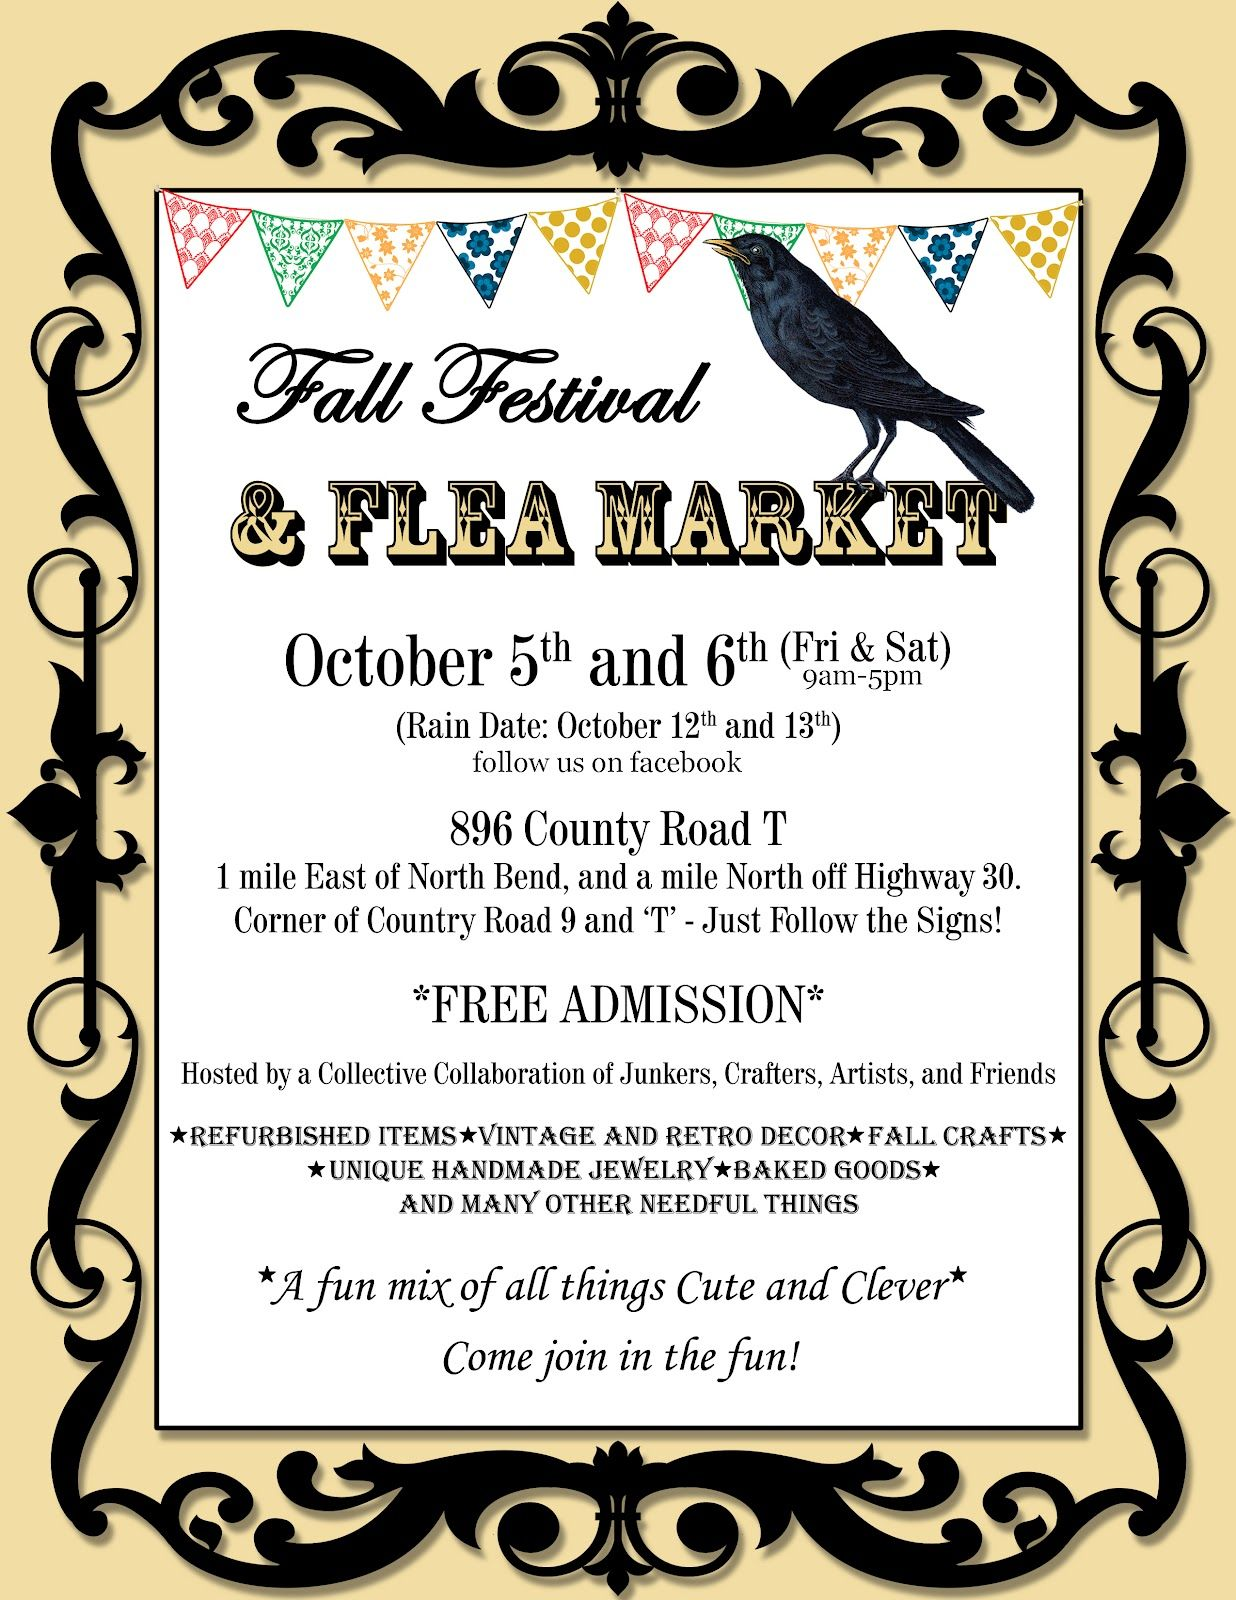 flyer border templates gallery images for fall festival 19 gallery images for fall festival flyer